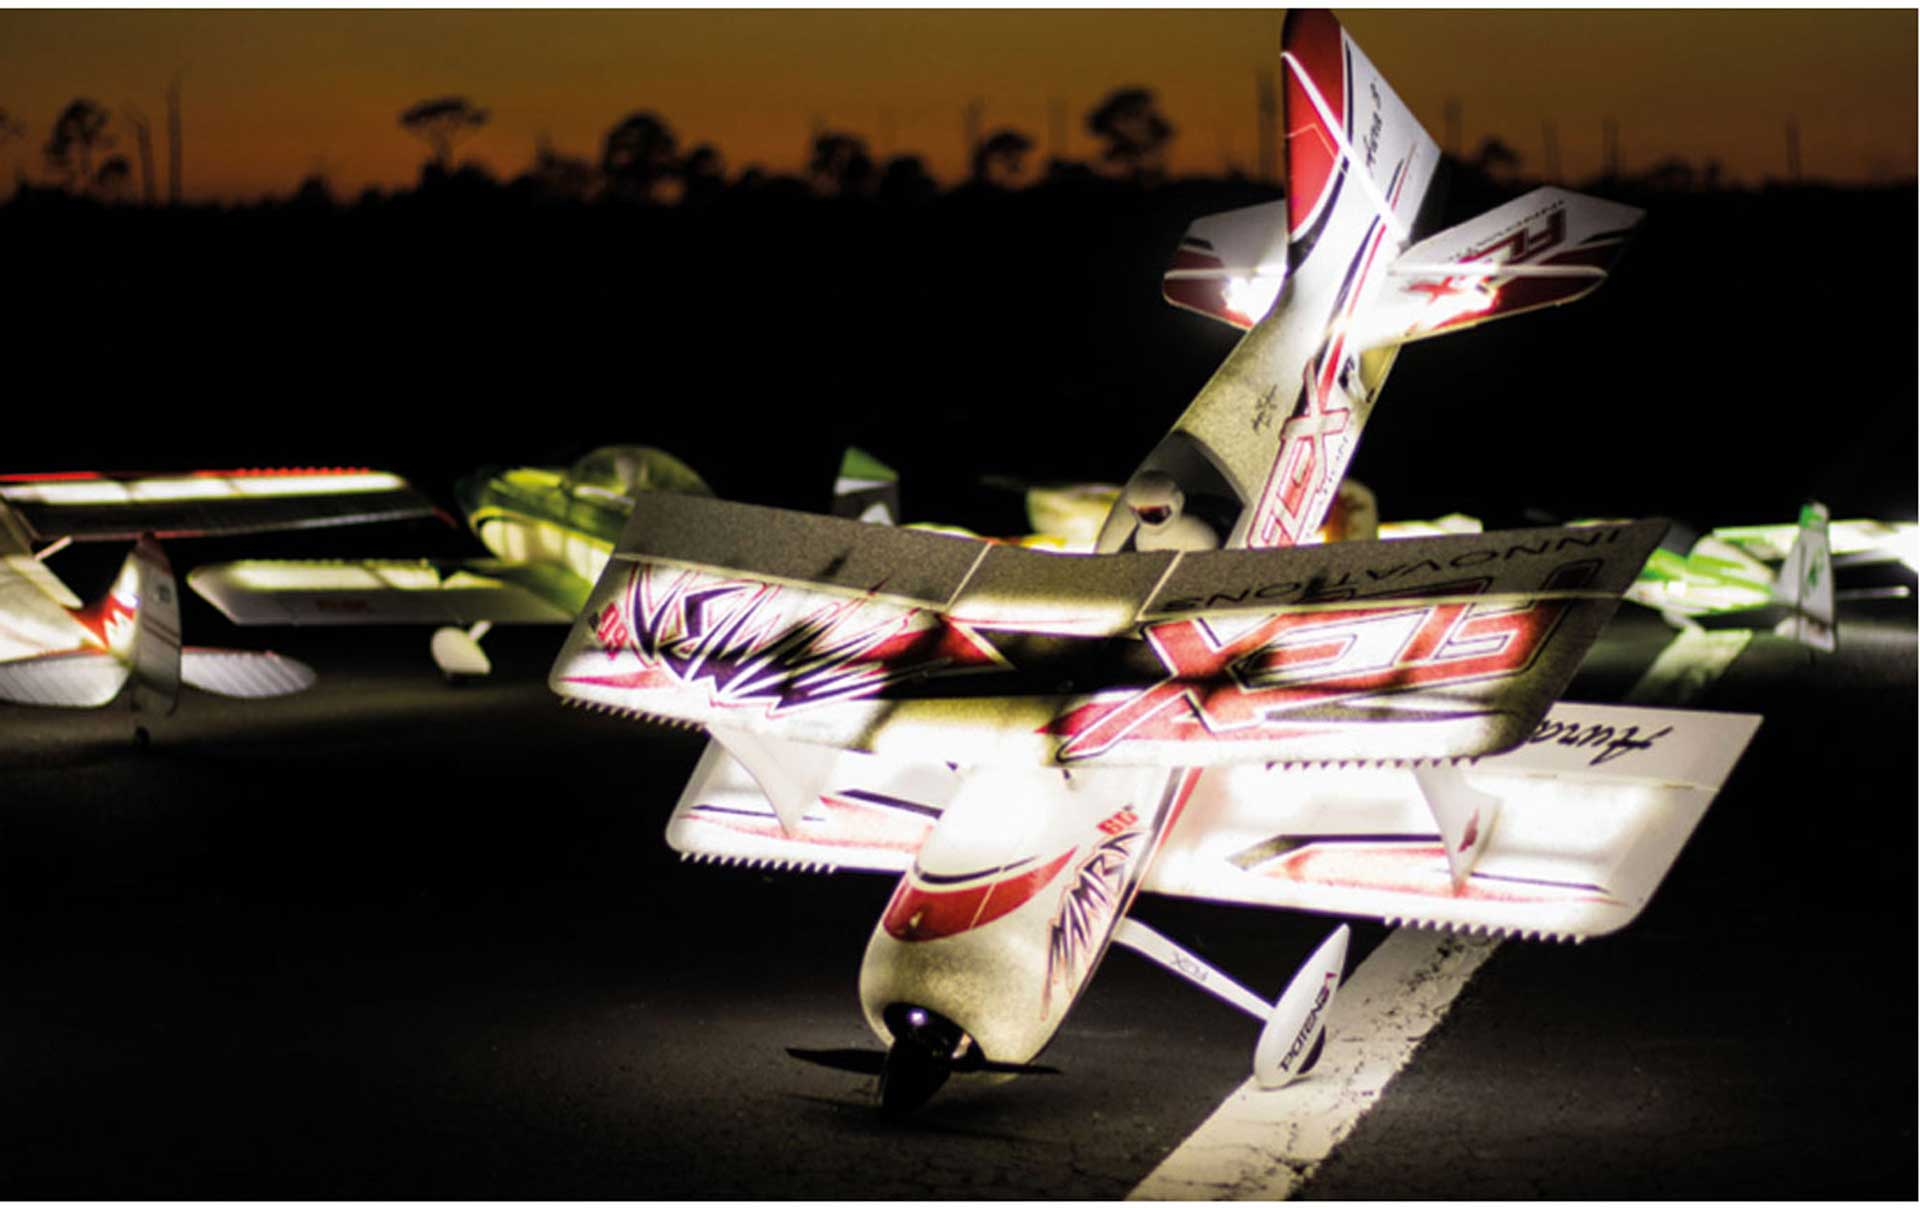 PREMIER AIRCRAFT MAMBA 60 E+ RED/BLACK PNP NIGHT WITH AURA 8 AND LED LIGHTING DOUBLE DECKER